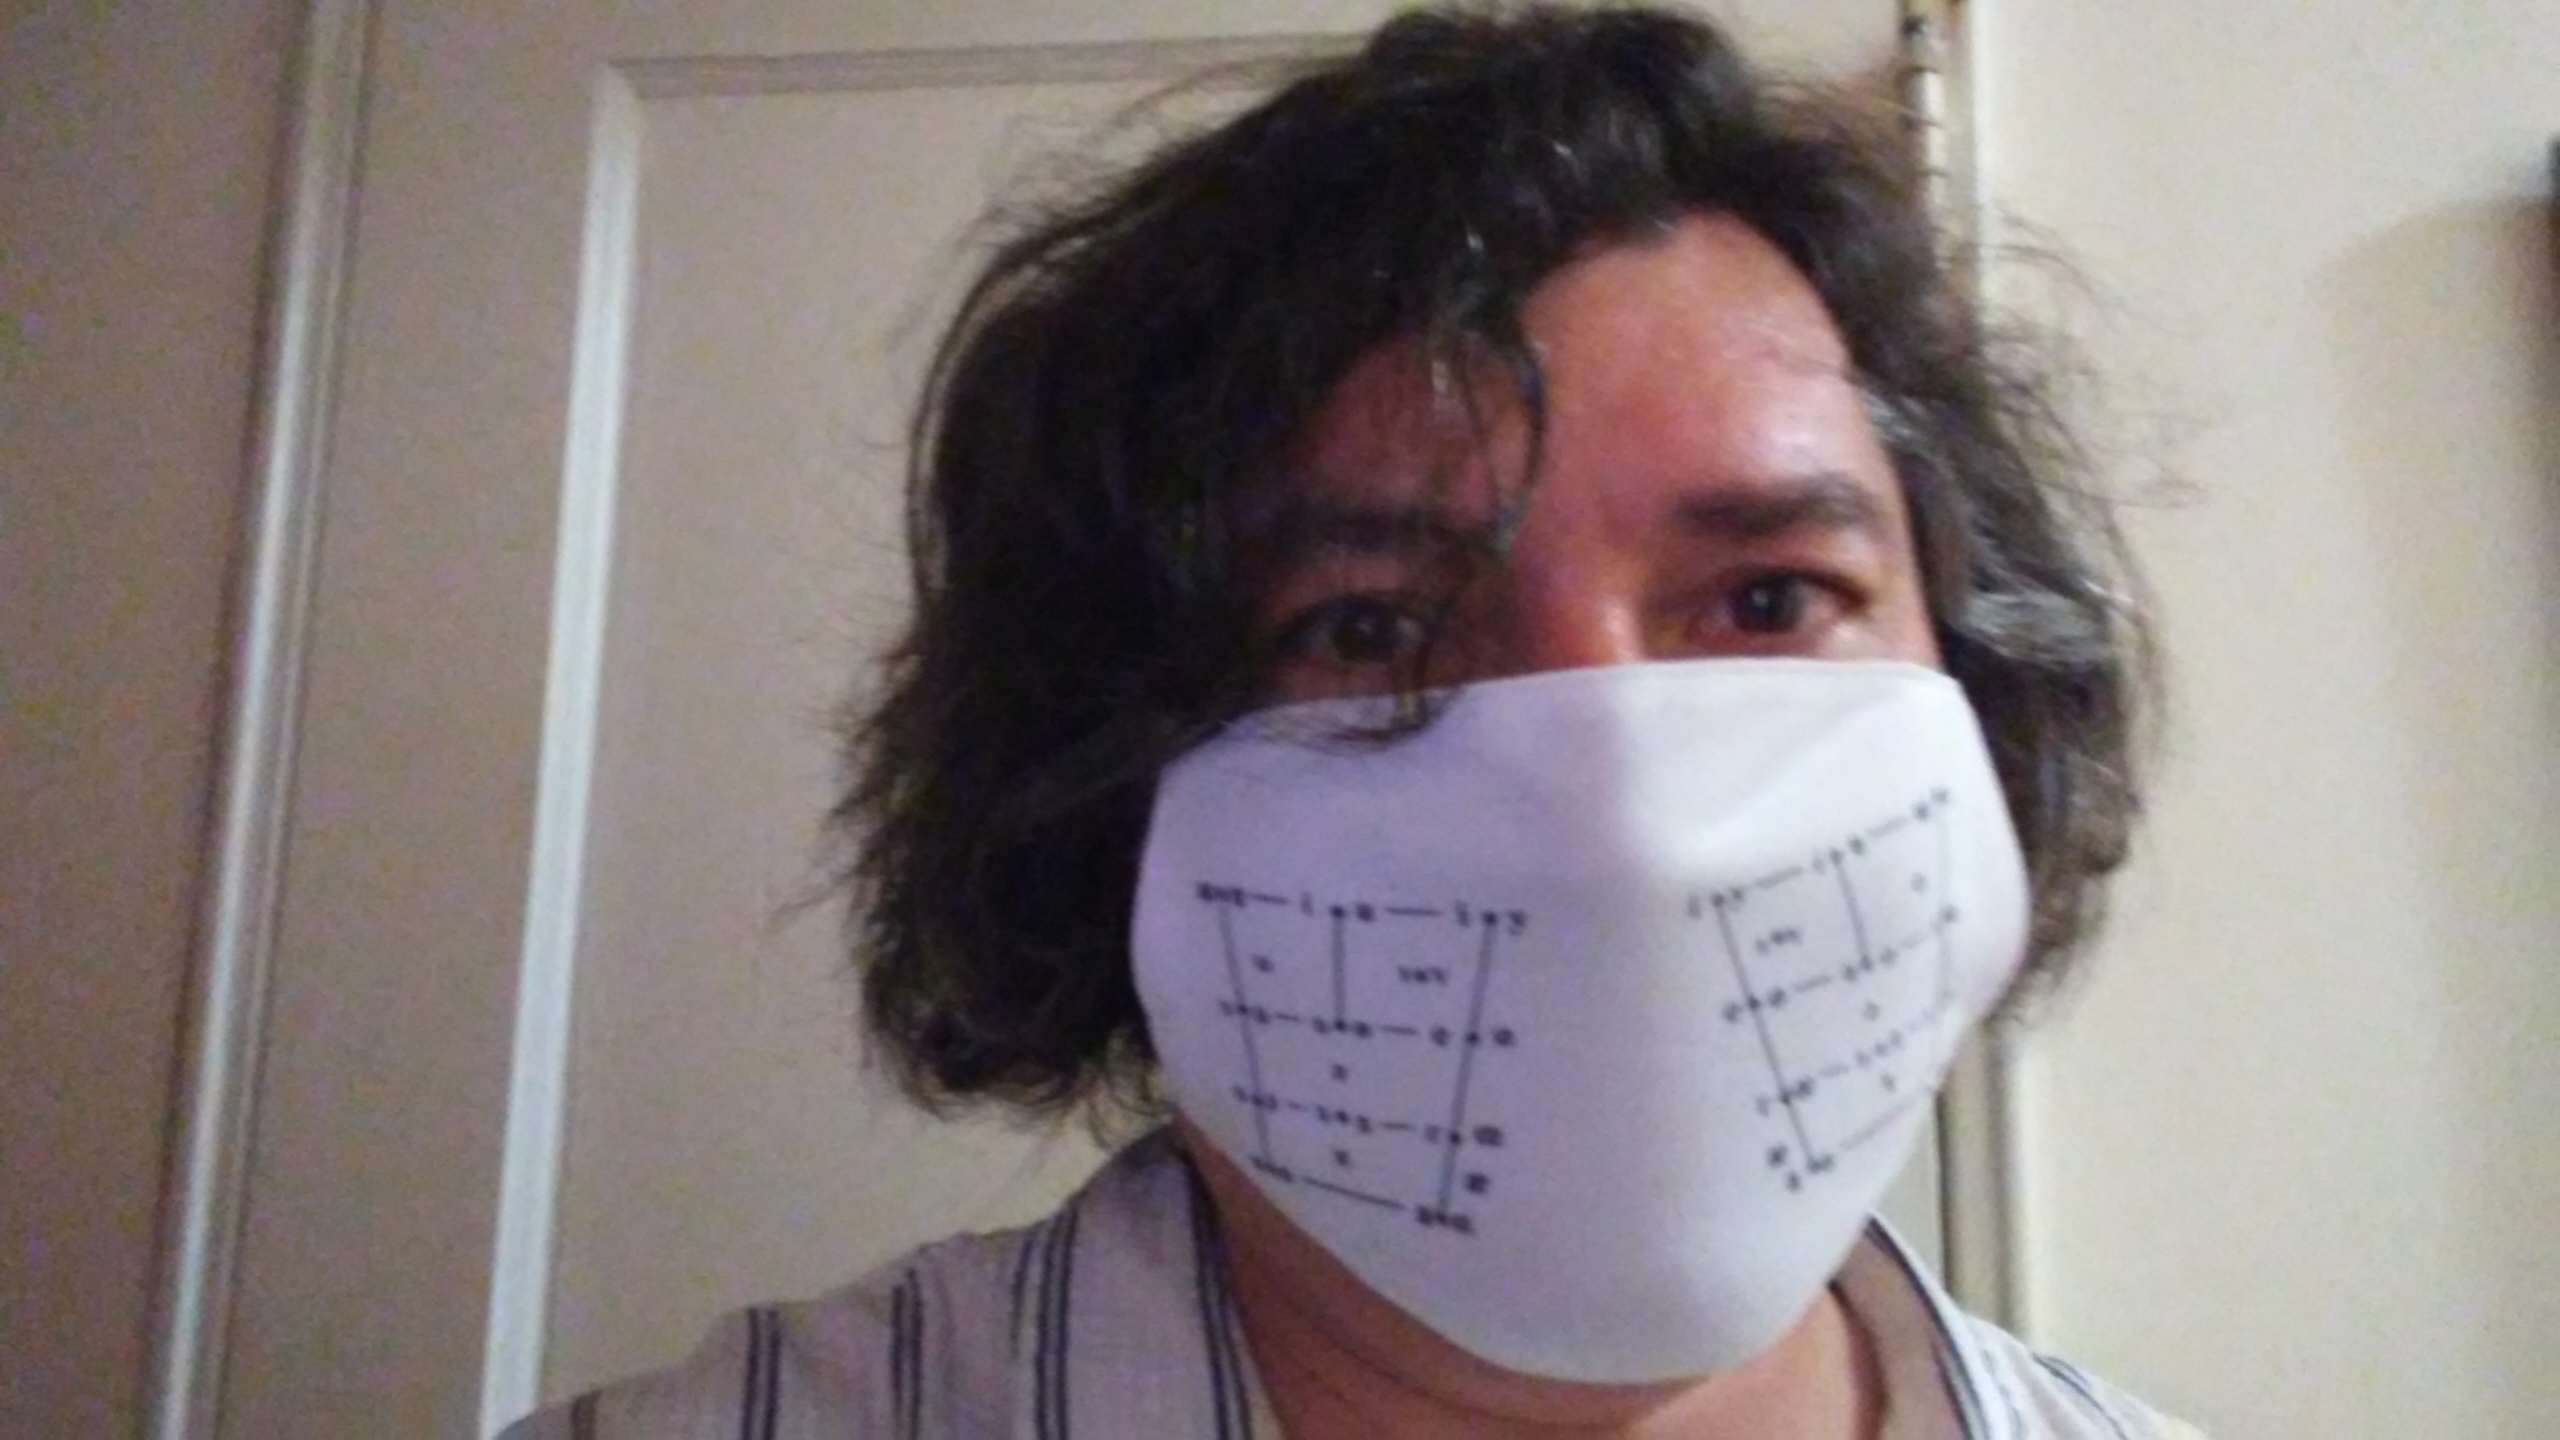 Angus Grieve-Smith wears a mask of his own design, featuring IPA vowel quadrilaterals on each cheek